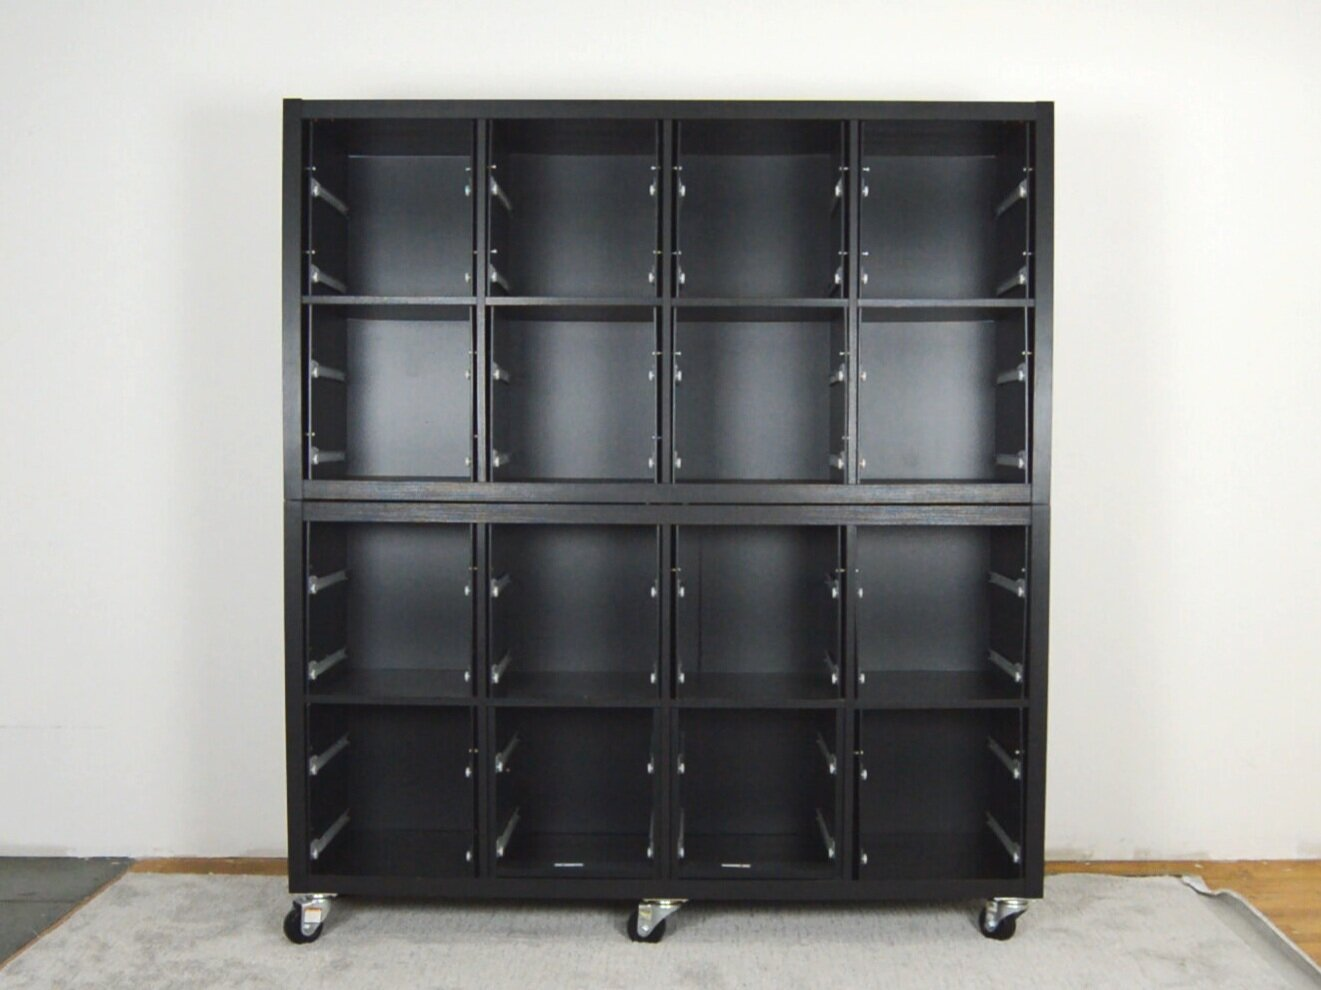 DIY Black Brown Ikea Kallax Hack - Library Card Catalog Inspired Cabinet on Wheels